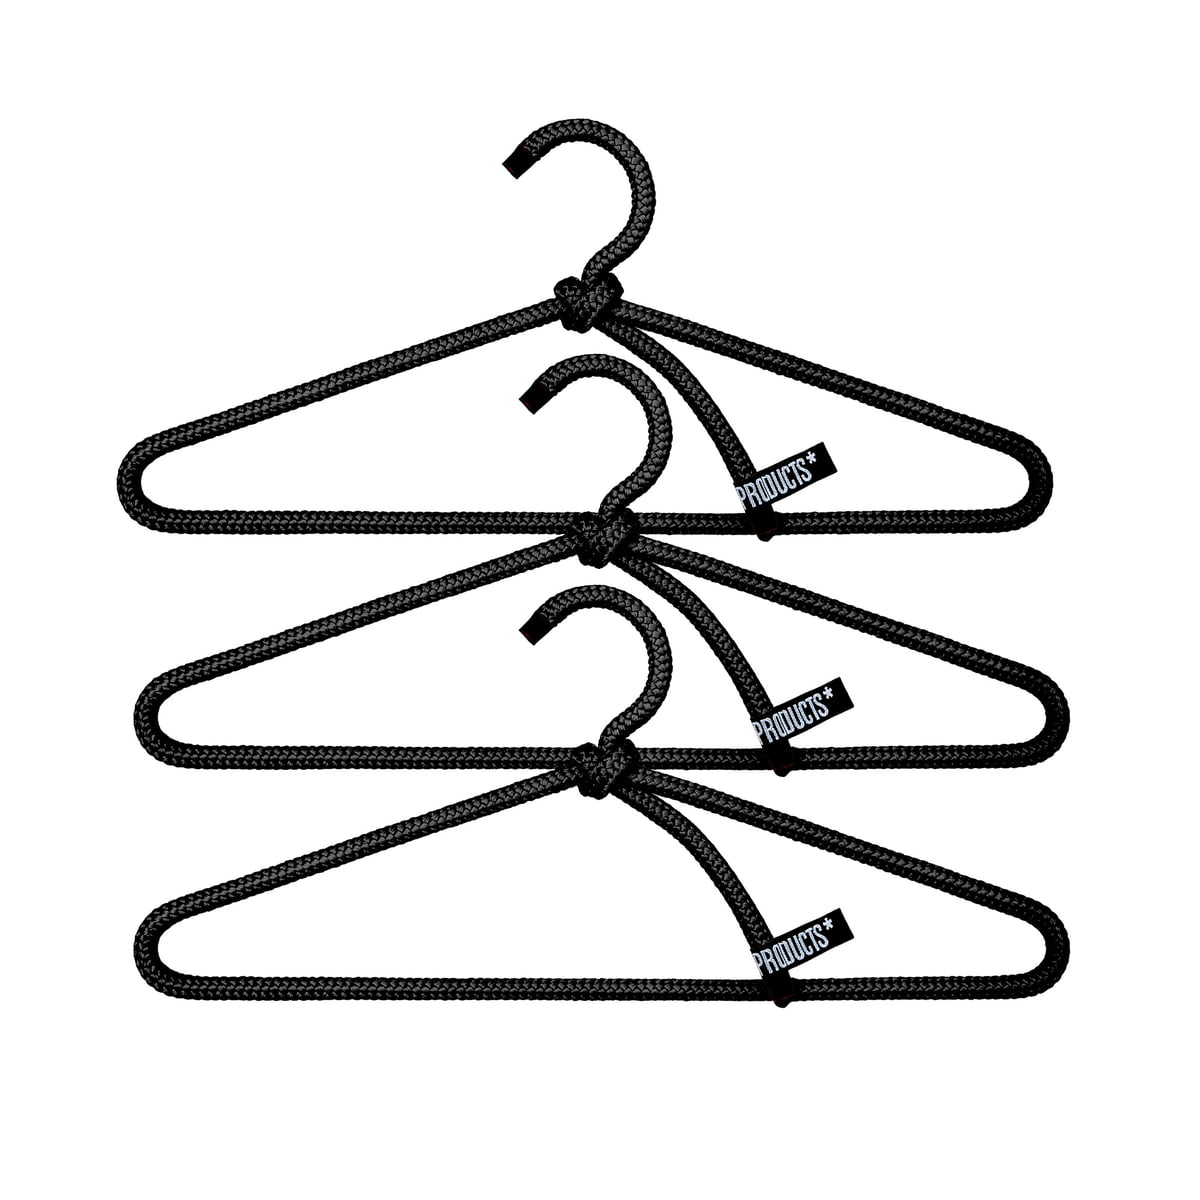 1200x1200 Loop Hangers From Peppermint Products